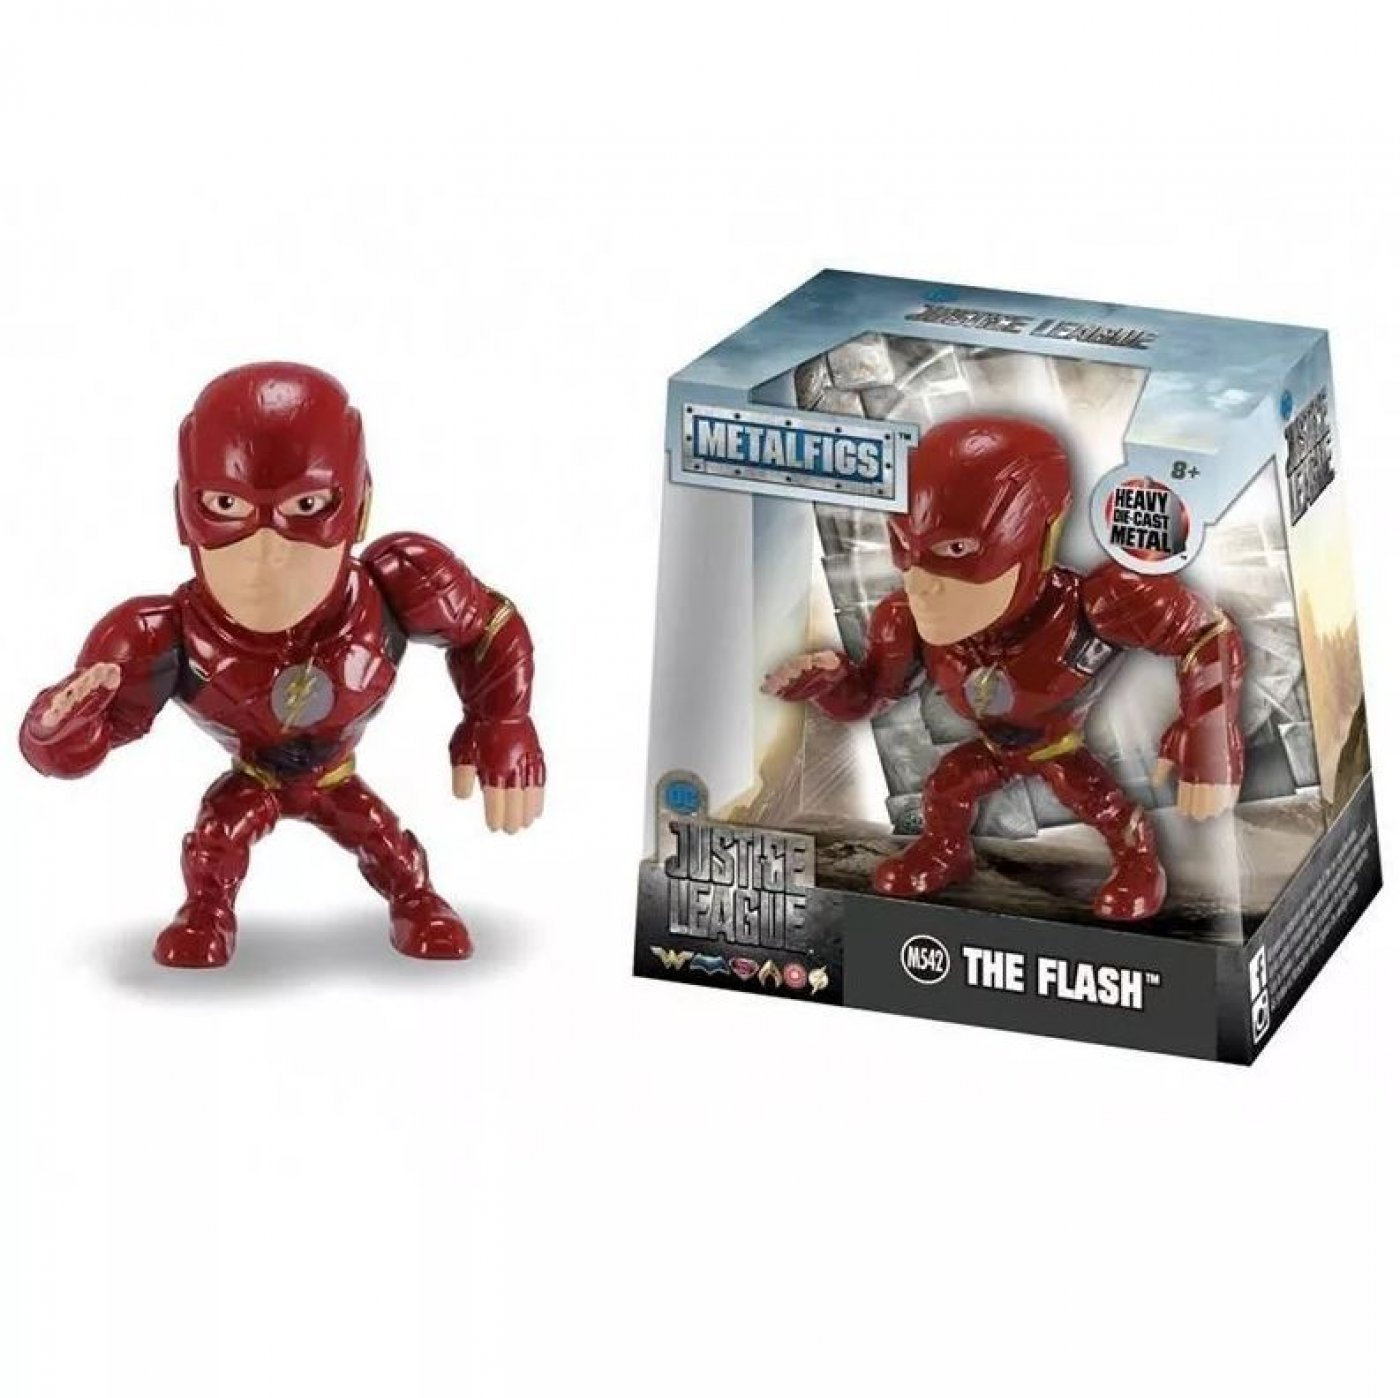 Flash Metalfigs